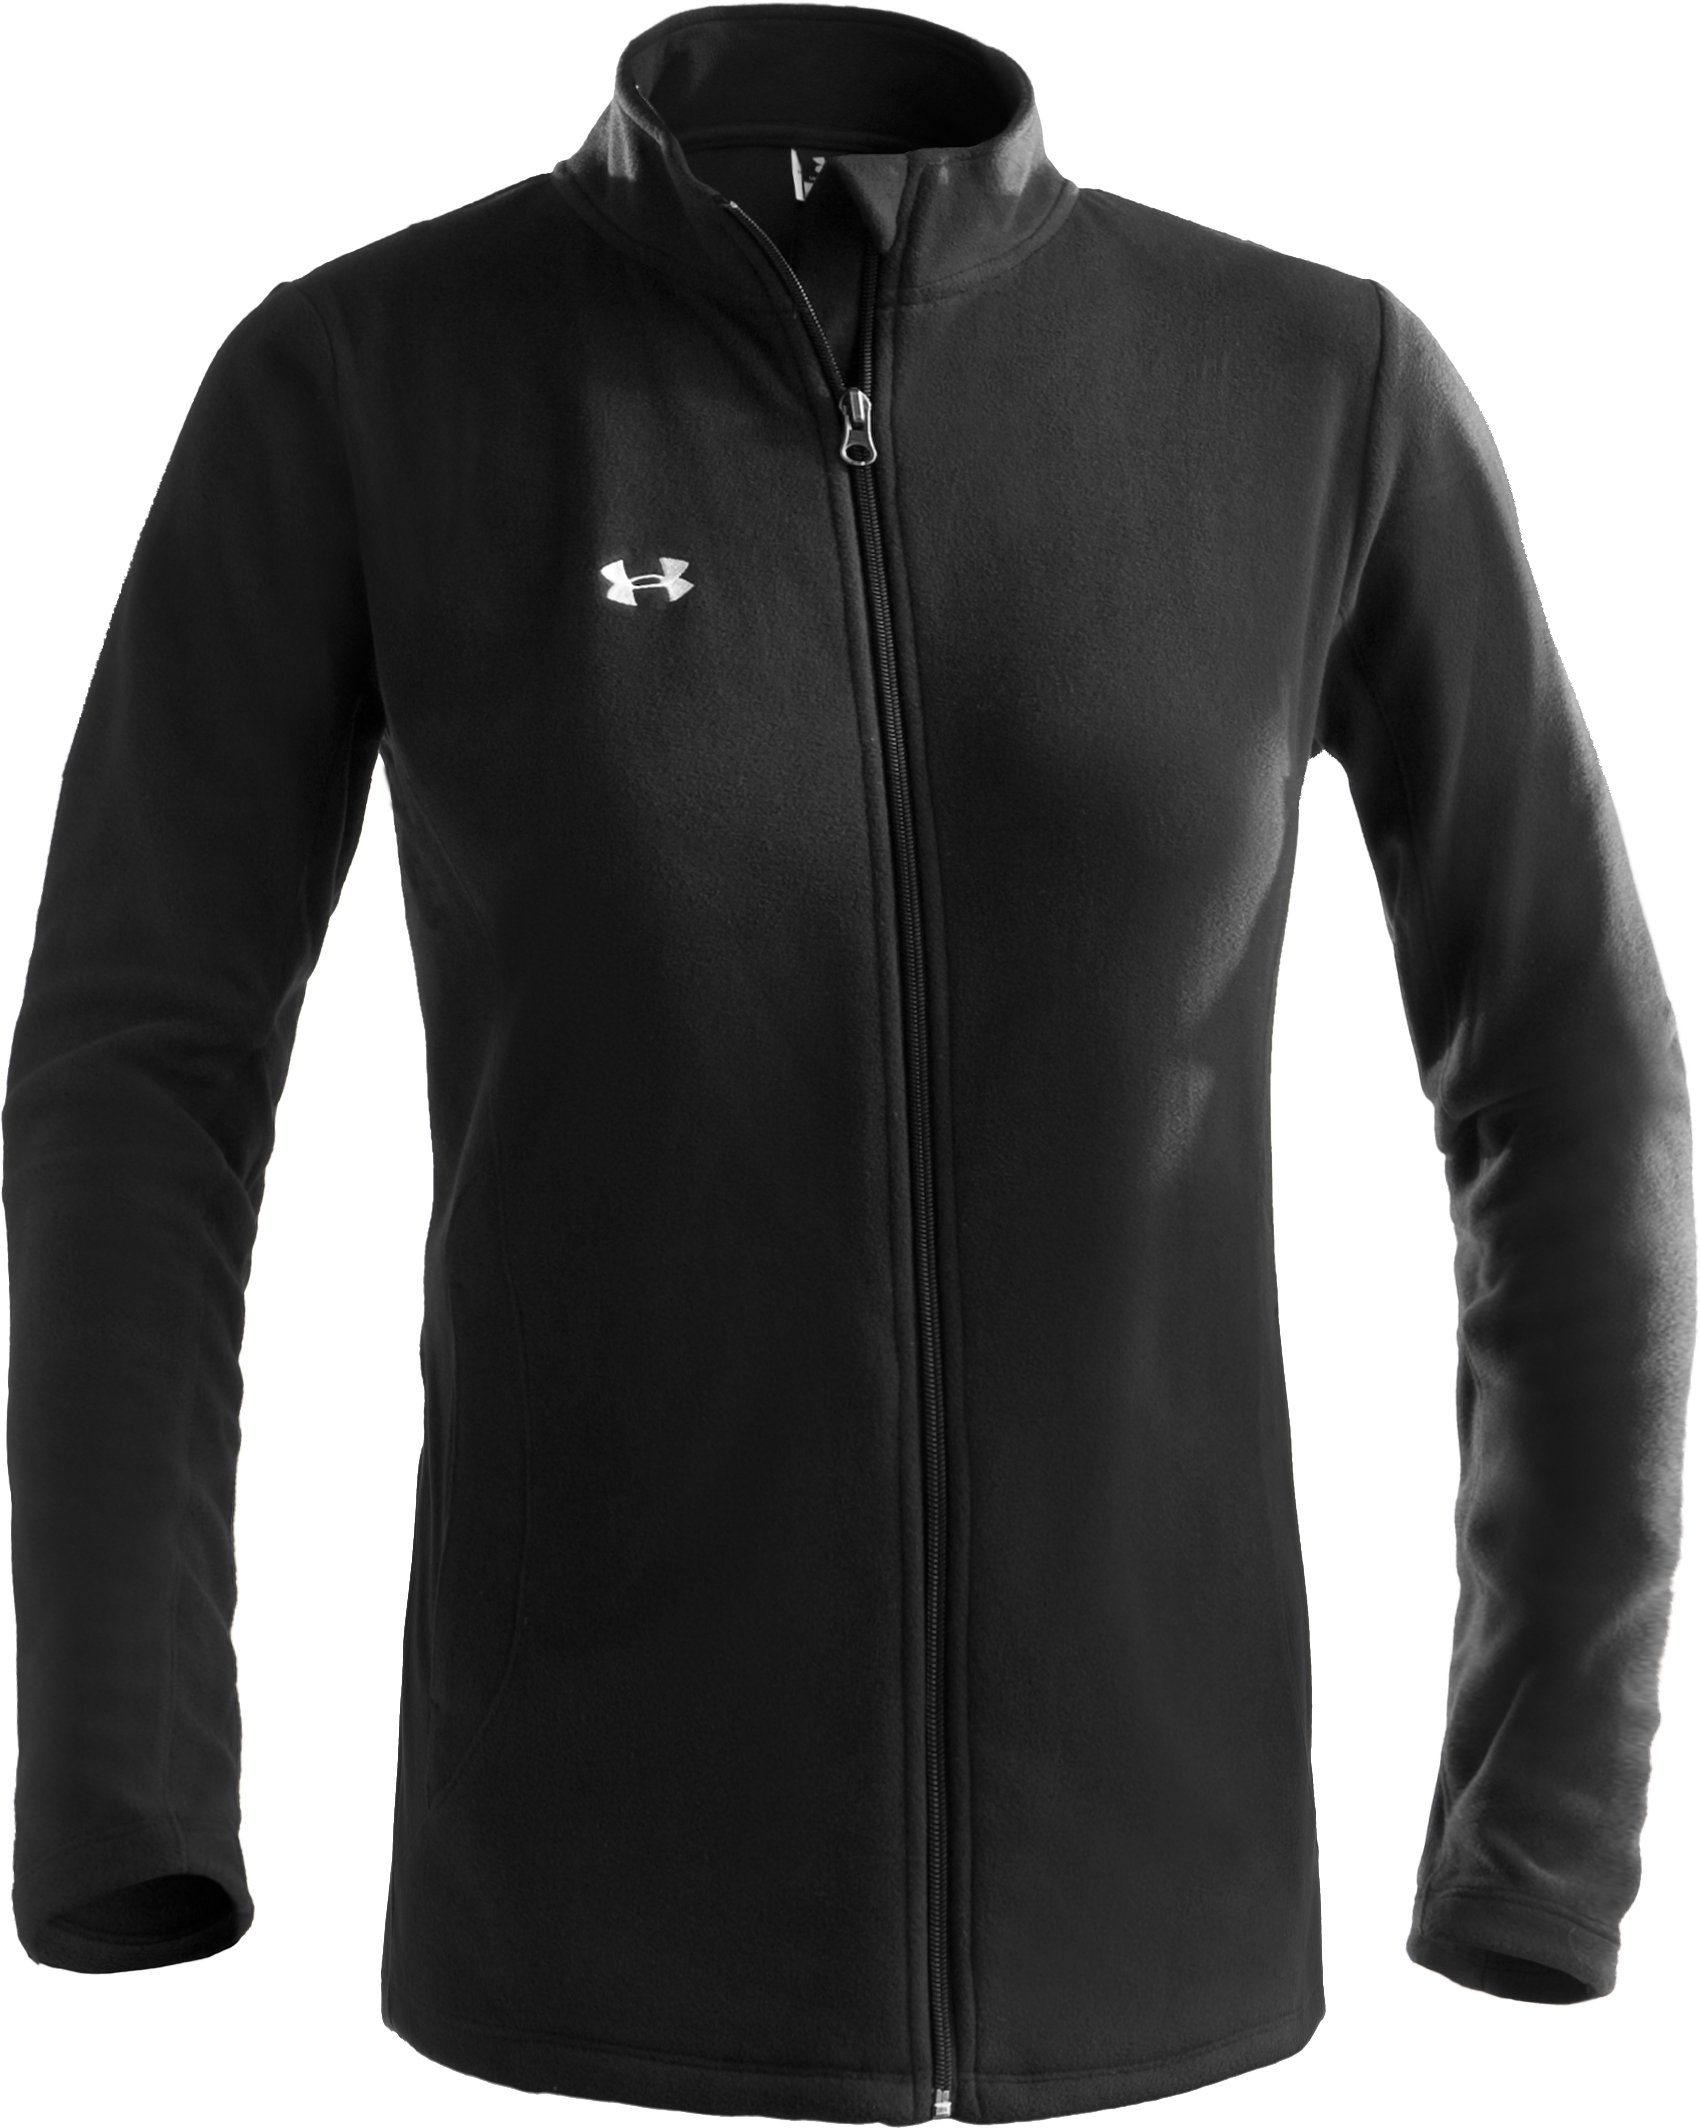 Women's Outer Limits Full Zip, Black